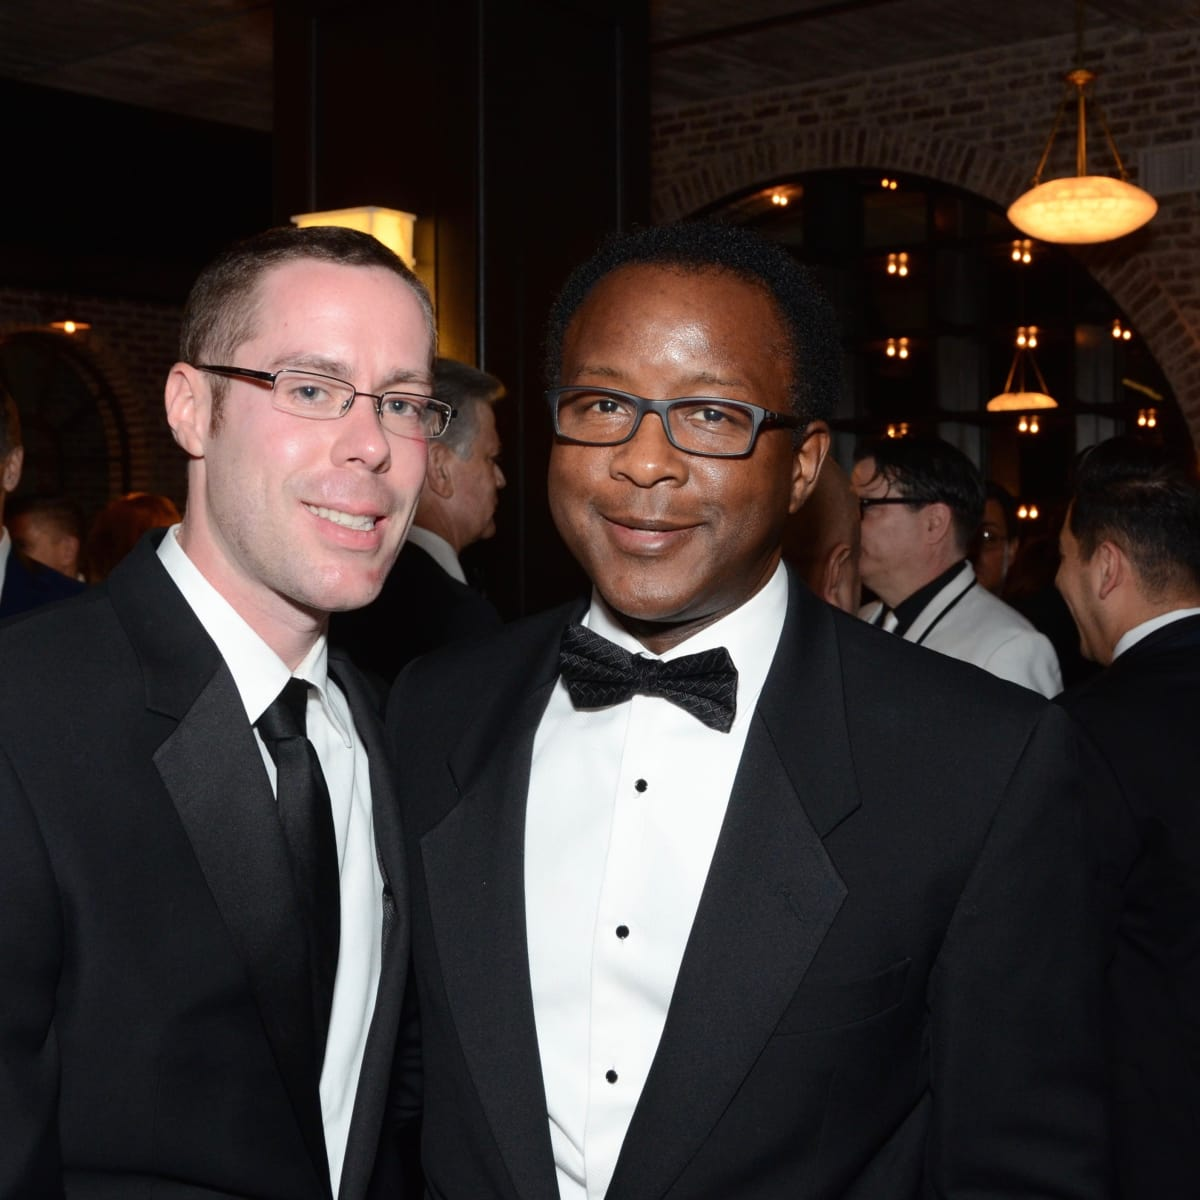 Adam Haiduk, MD and William Howard at Stages Gala